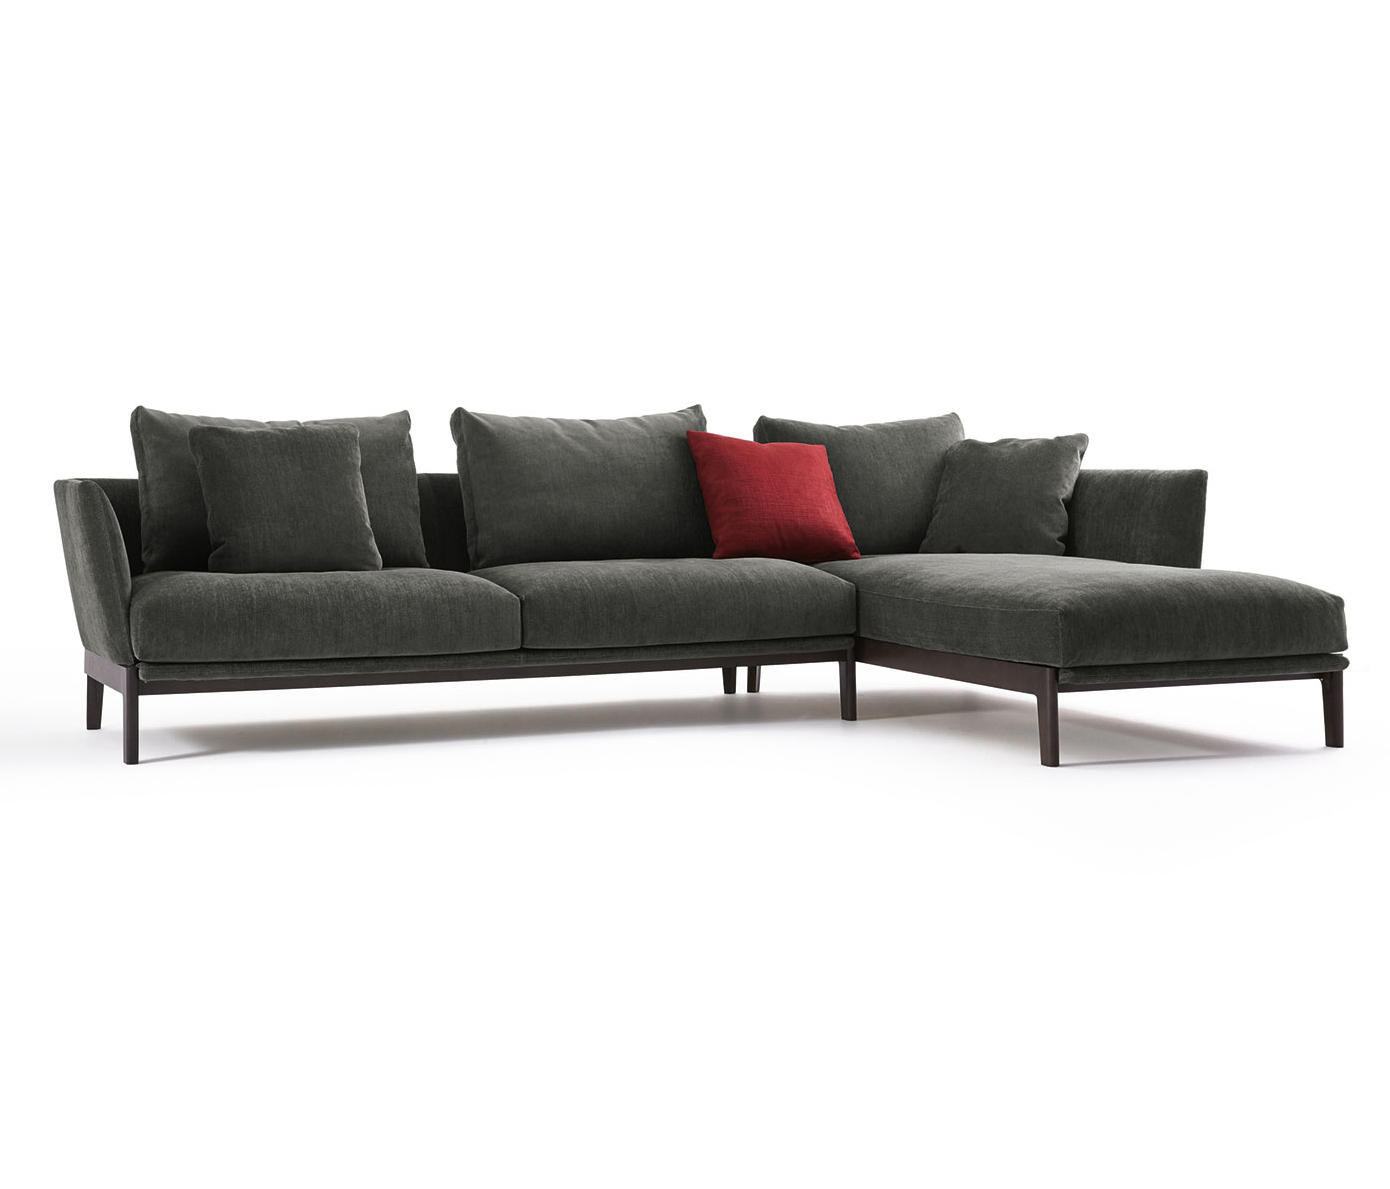 Chelsea sofa modular sofa systems from molteni c for Sofas modulares baratos